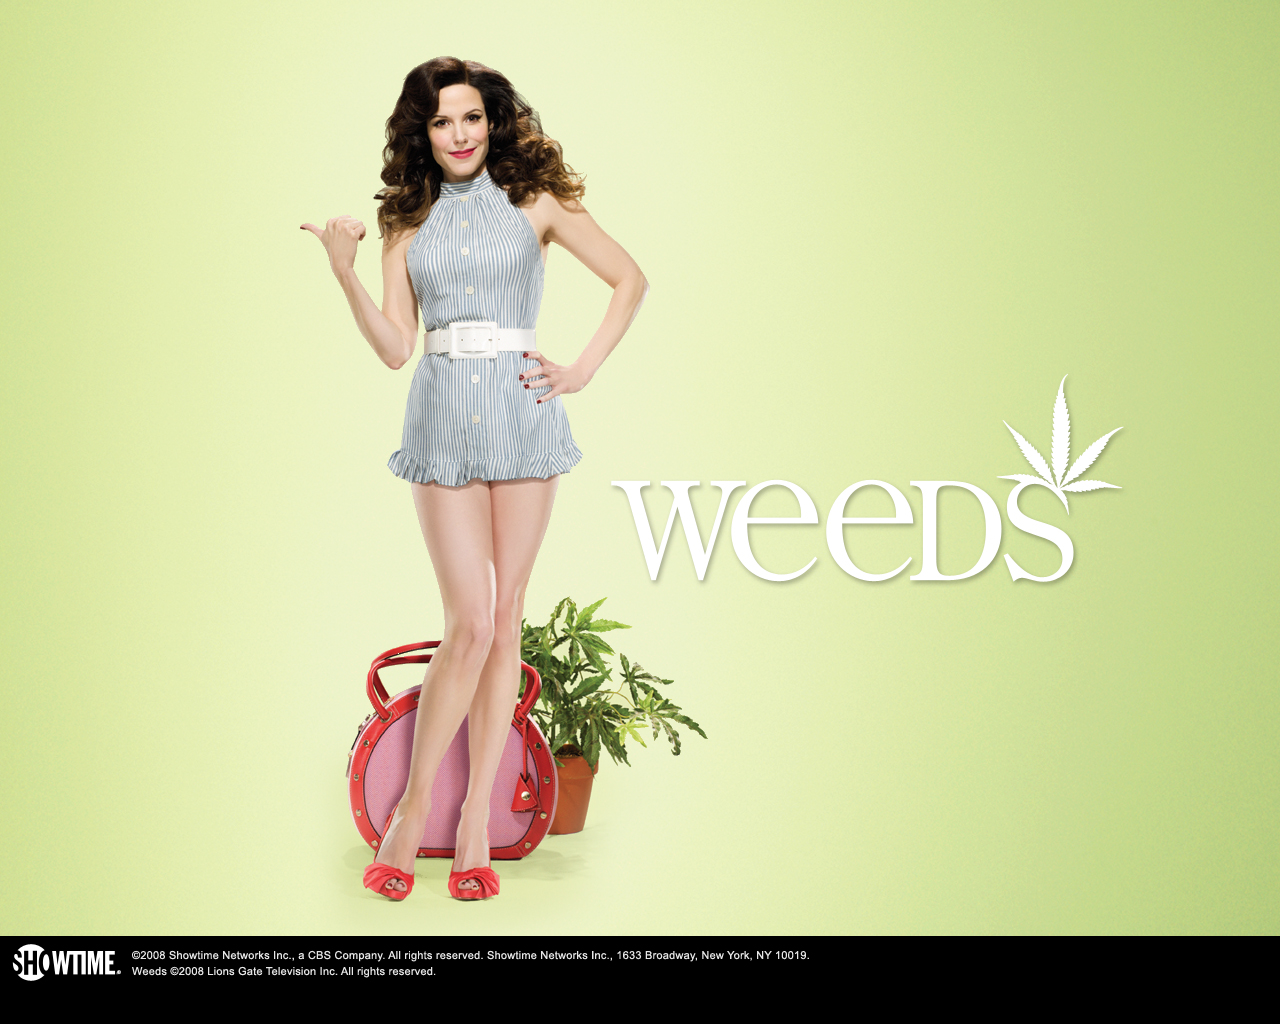 Weeds Wallpaper 1280x1024 1280x1024